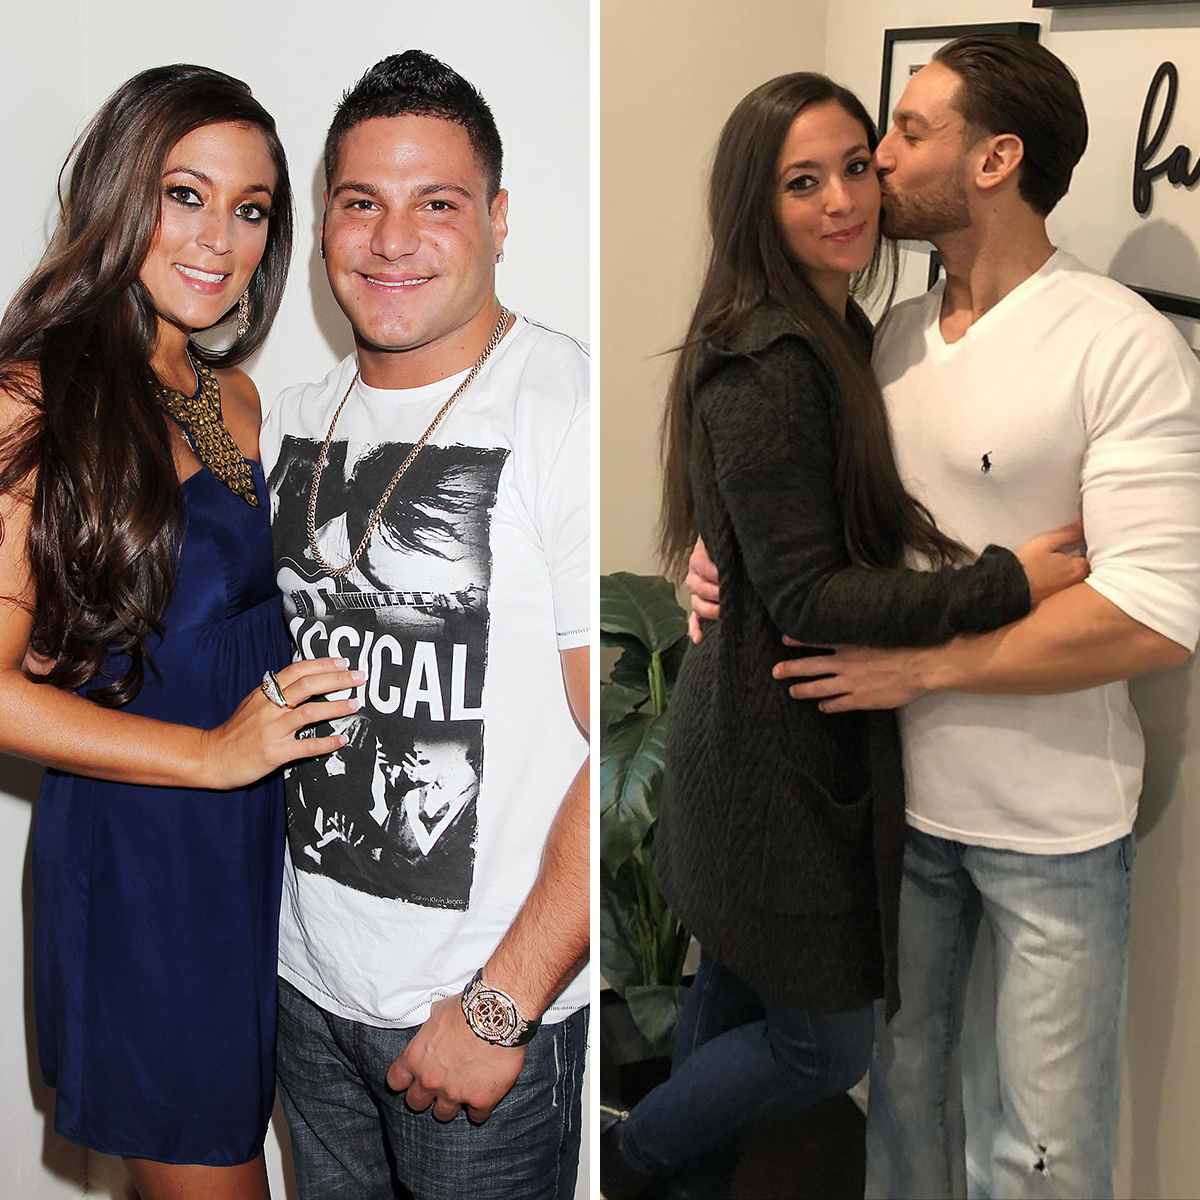 Ronnie Jersey Shore Fat Images